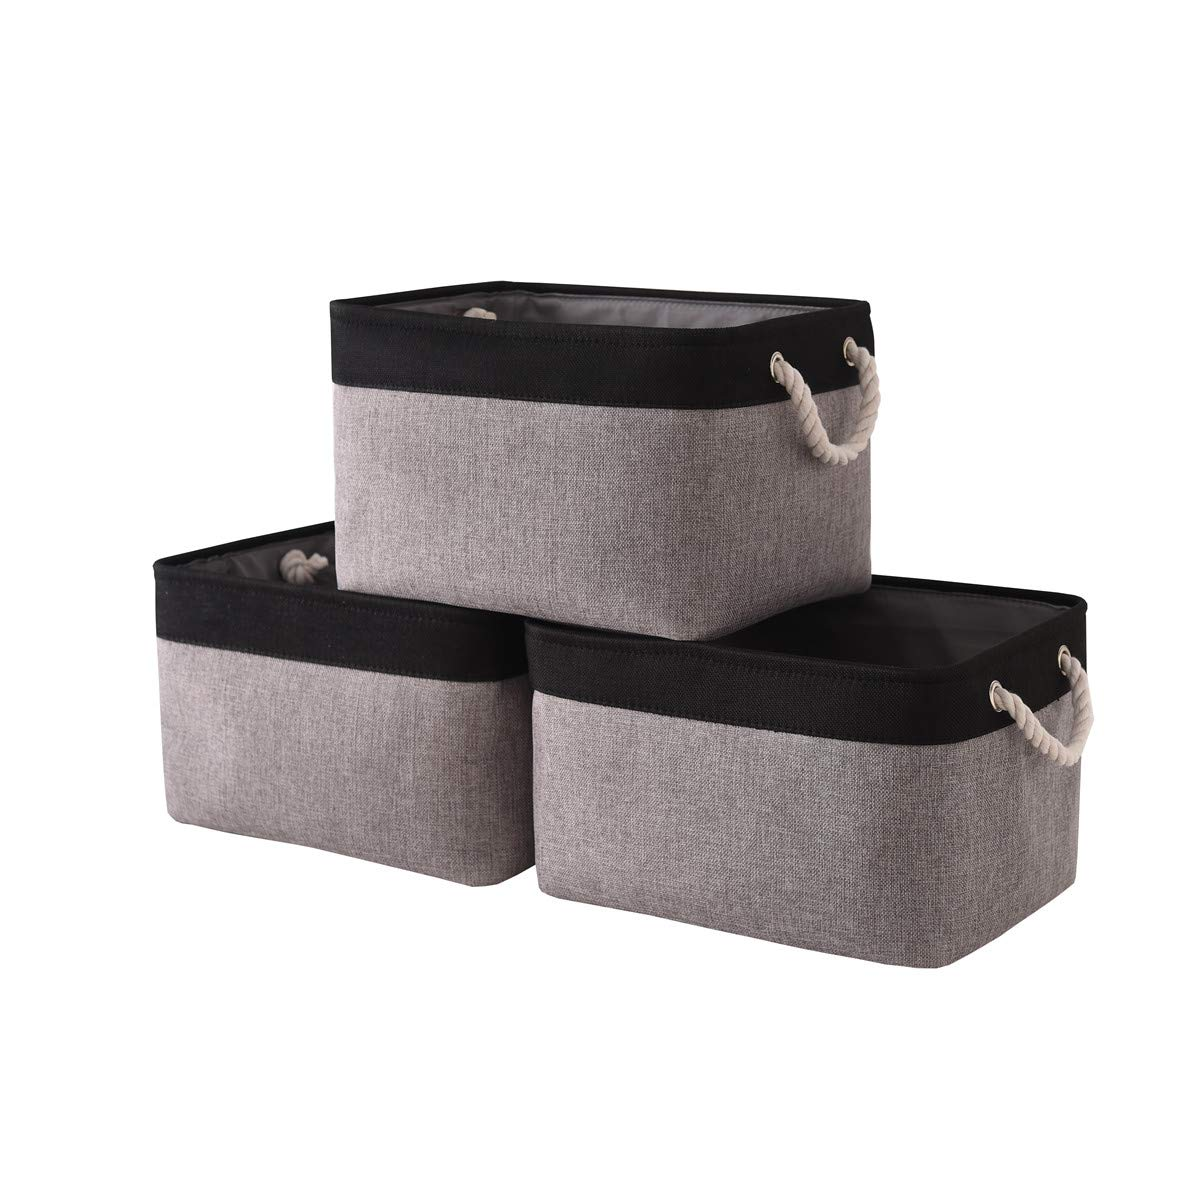 Gifts For Organizers >> Storage Basket Fabric Storage Bins Baskets For Gifts Empty Canvas Storage Baskets Organizers With Rope Handles Dog Toy Basket For Organizing Empty